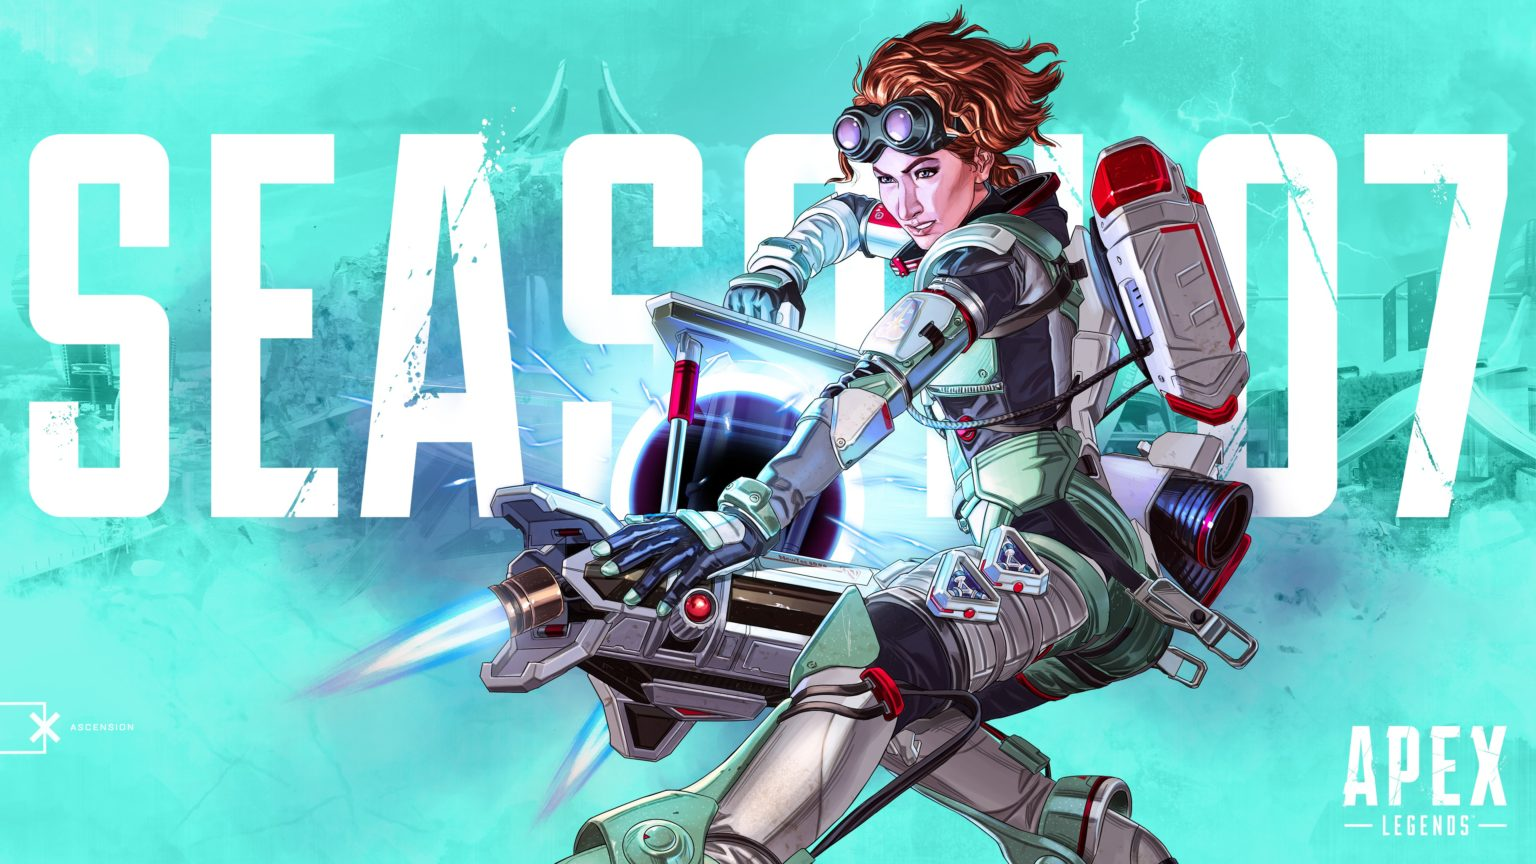 Las 12 ubicaciones de levantamiento por gravedad en World's Edge, Kings Canyon en Apex Legends